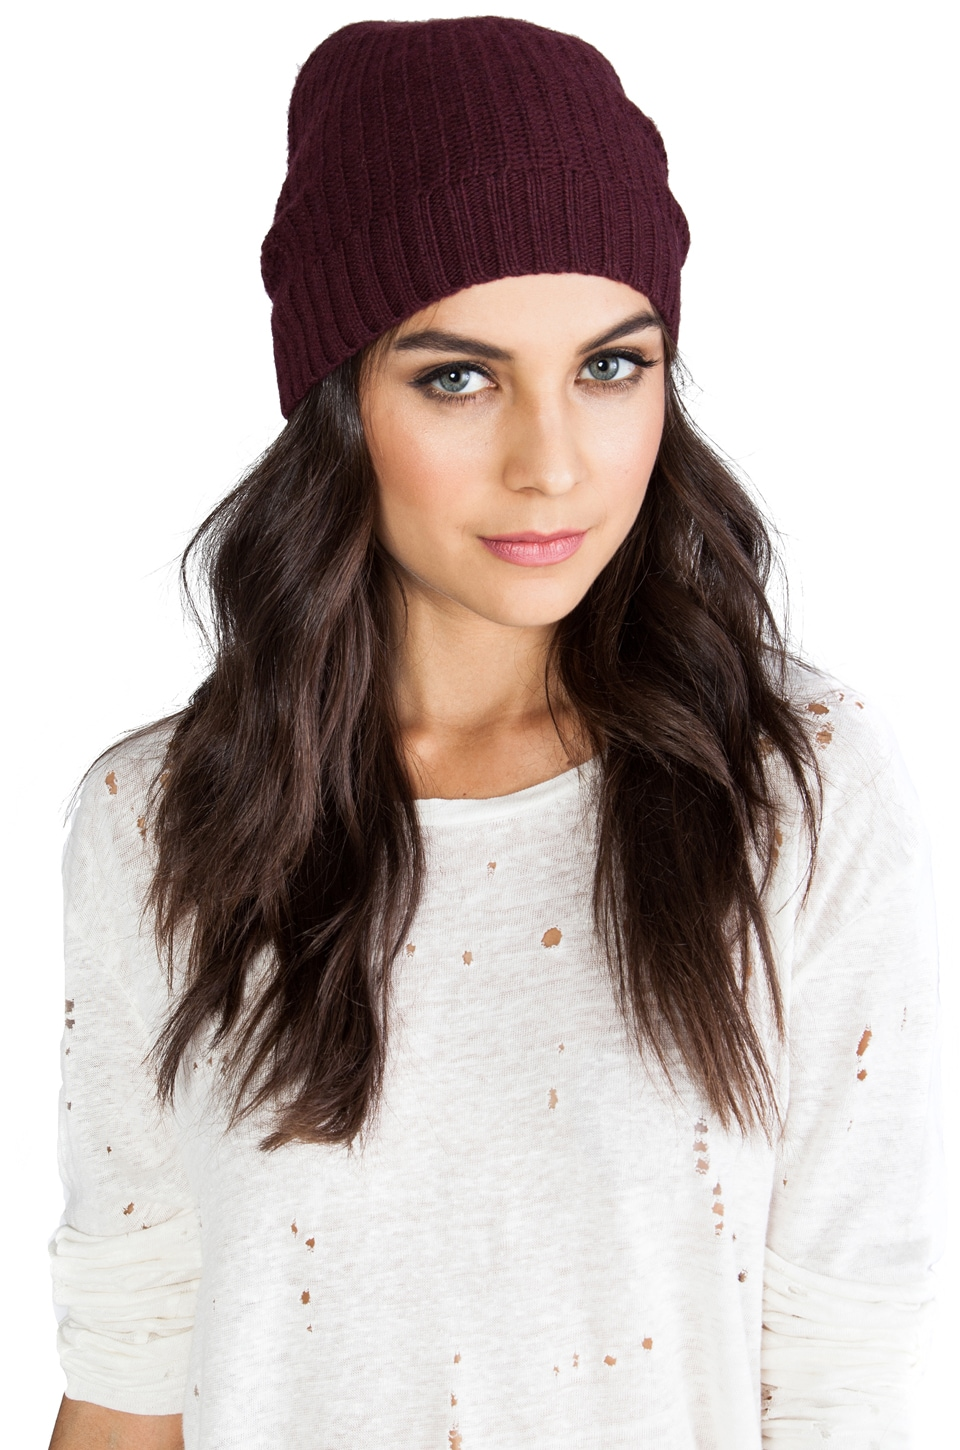 Autumn Cashmere 1/2 Cardigan Stitch Hat in Wine